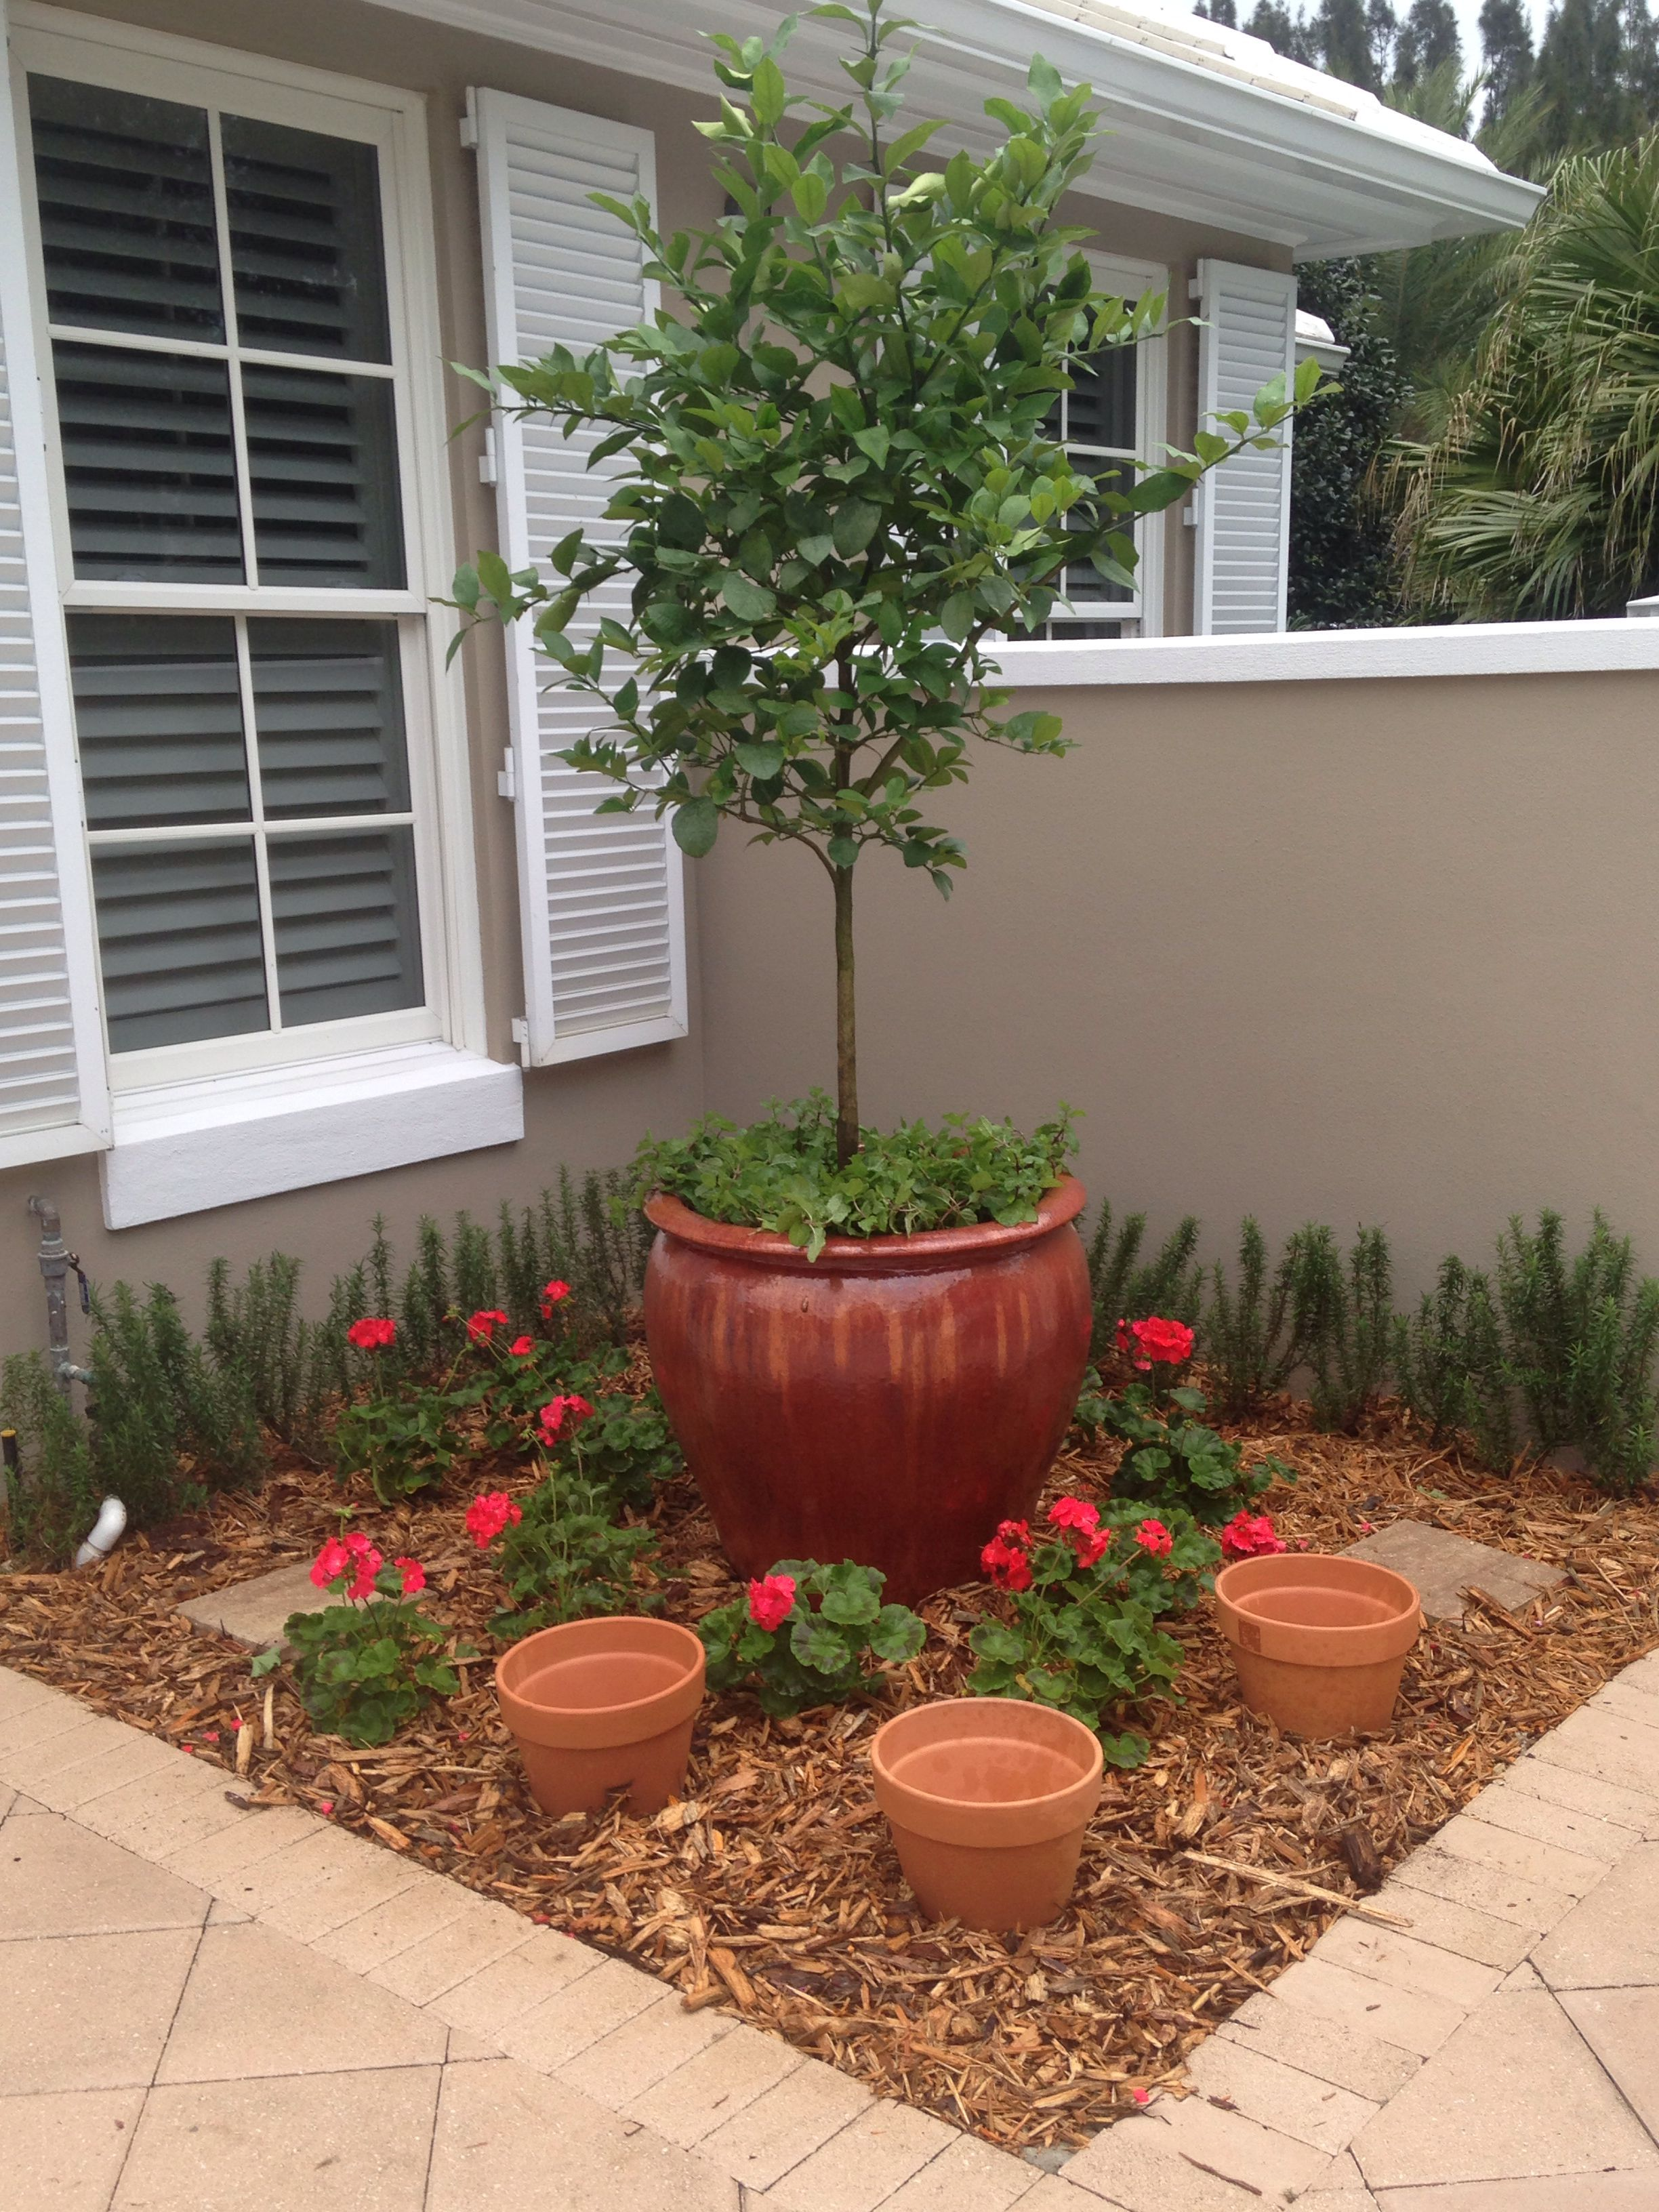 Lemon tree with mint, pots of herbs, rosemary hedge \u0026 geraniums ...